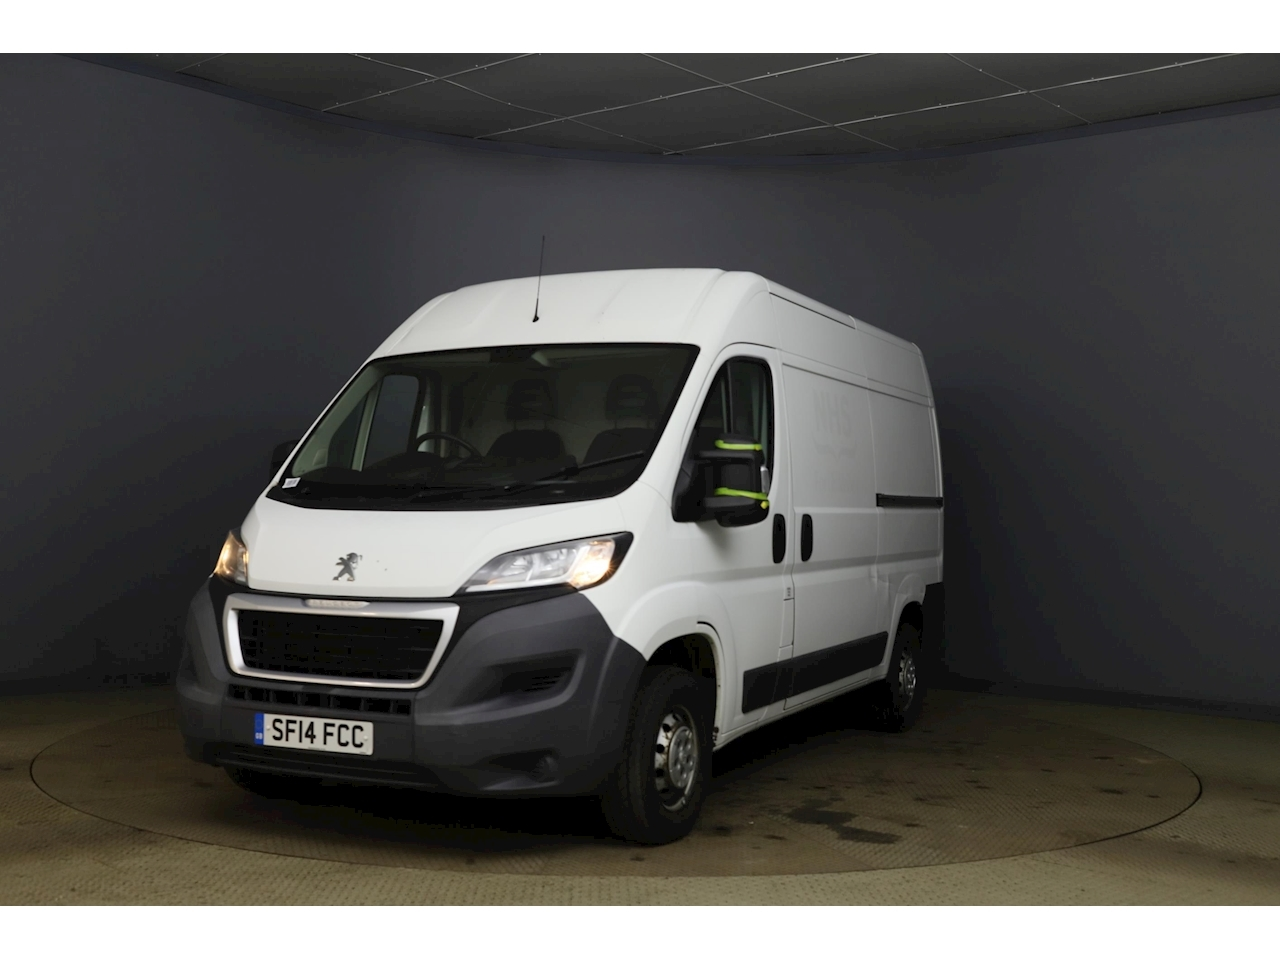 Peugeot Boxer 2.2 HDi 333 Panel Van 5dr Diesel Manual L2 H2 EU5 (110 ps) Panel Van 2.2 Manual Diesel